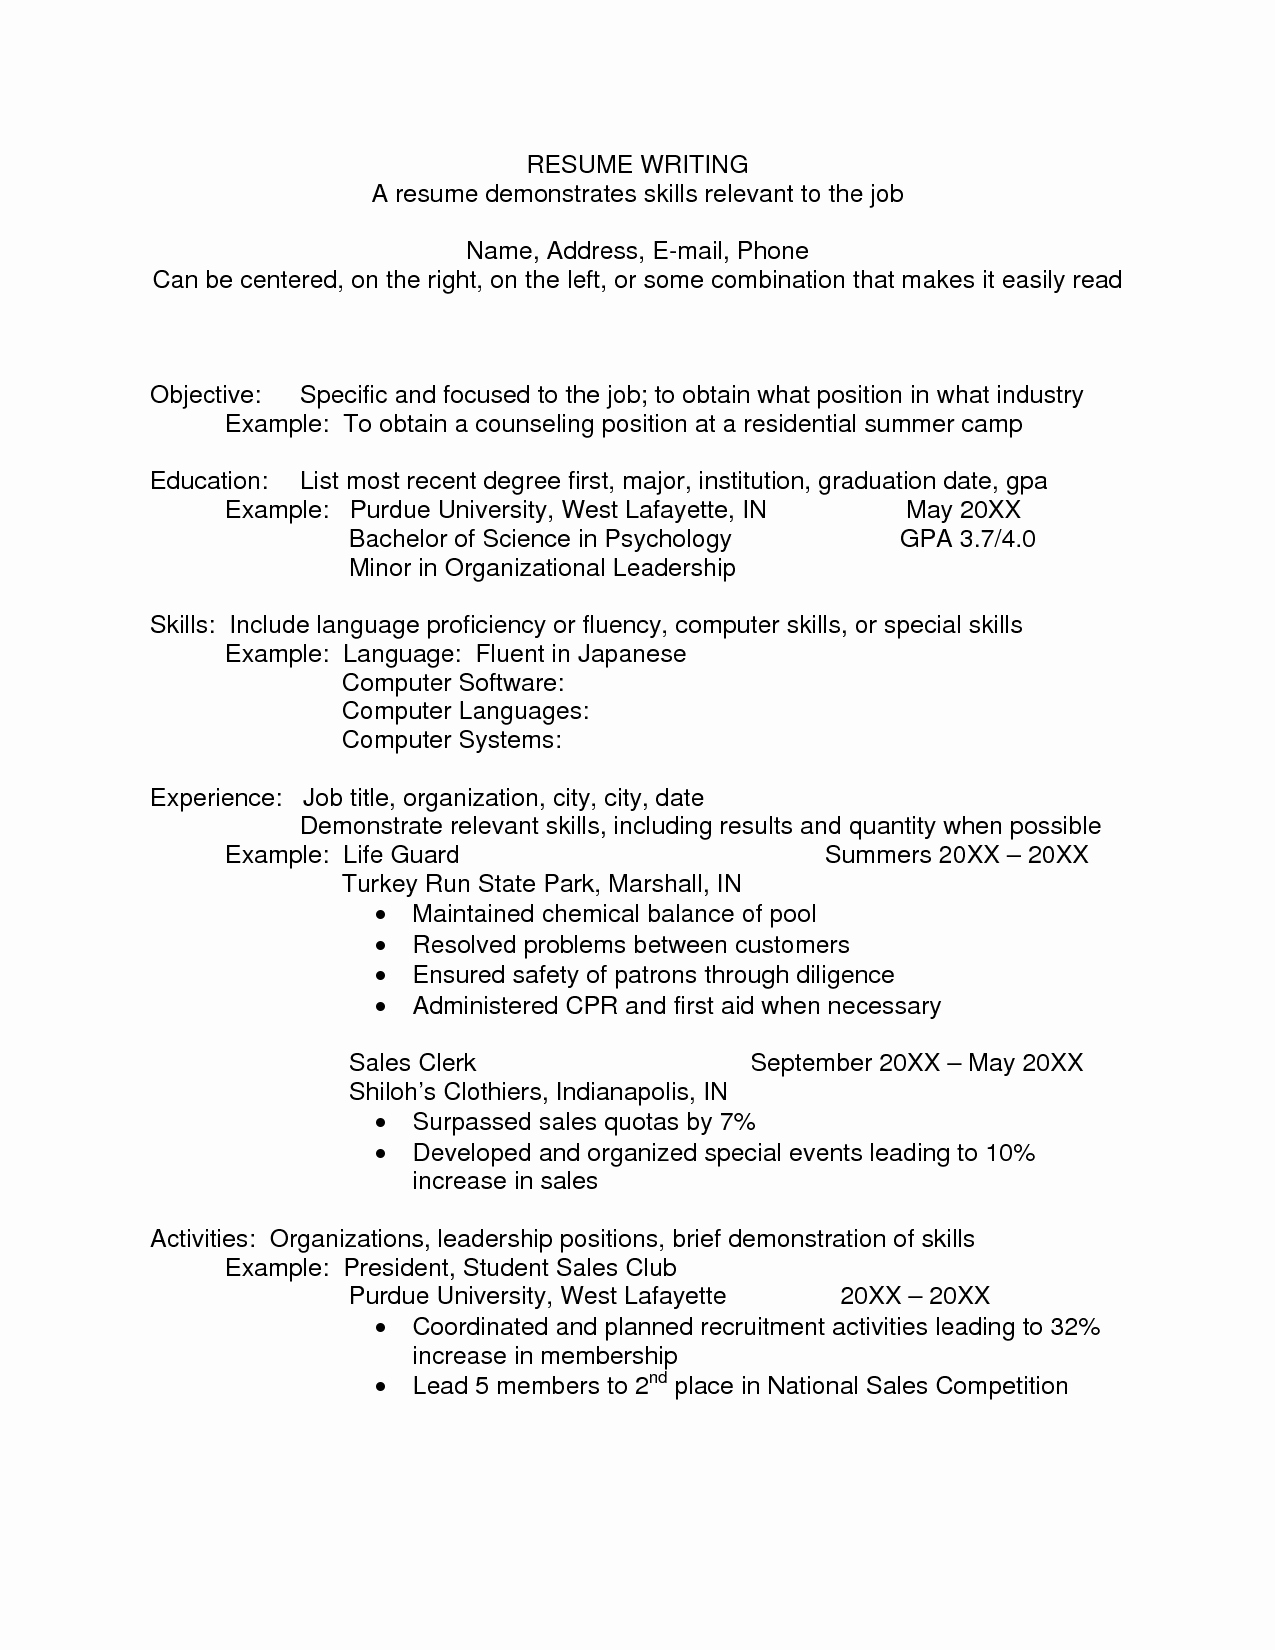 Resumes for Camp Counselors Cover Letter Samples Cover